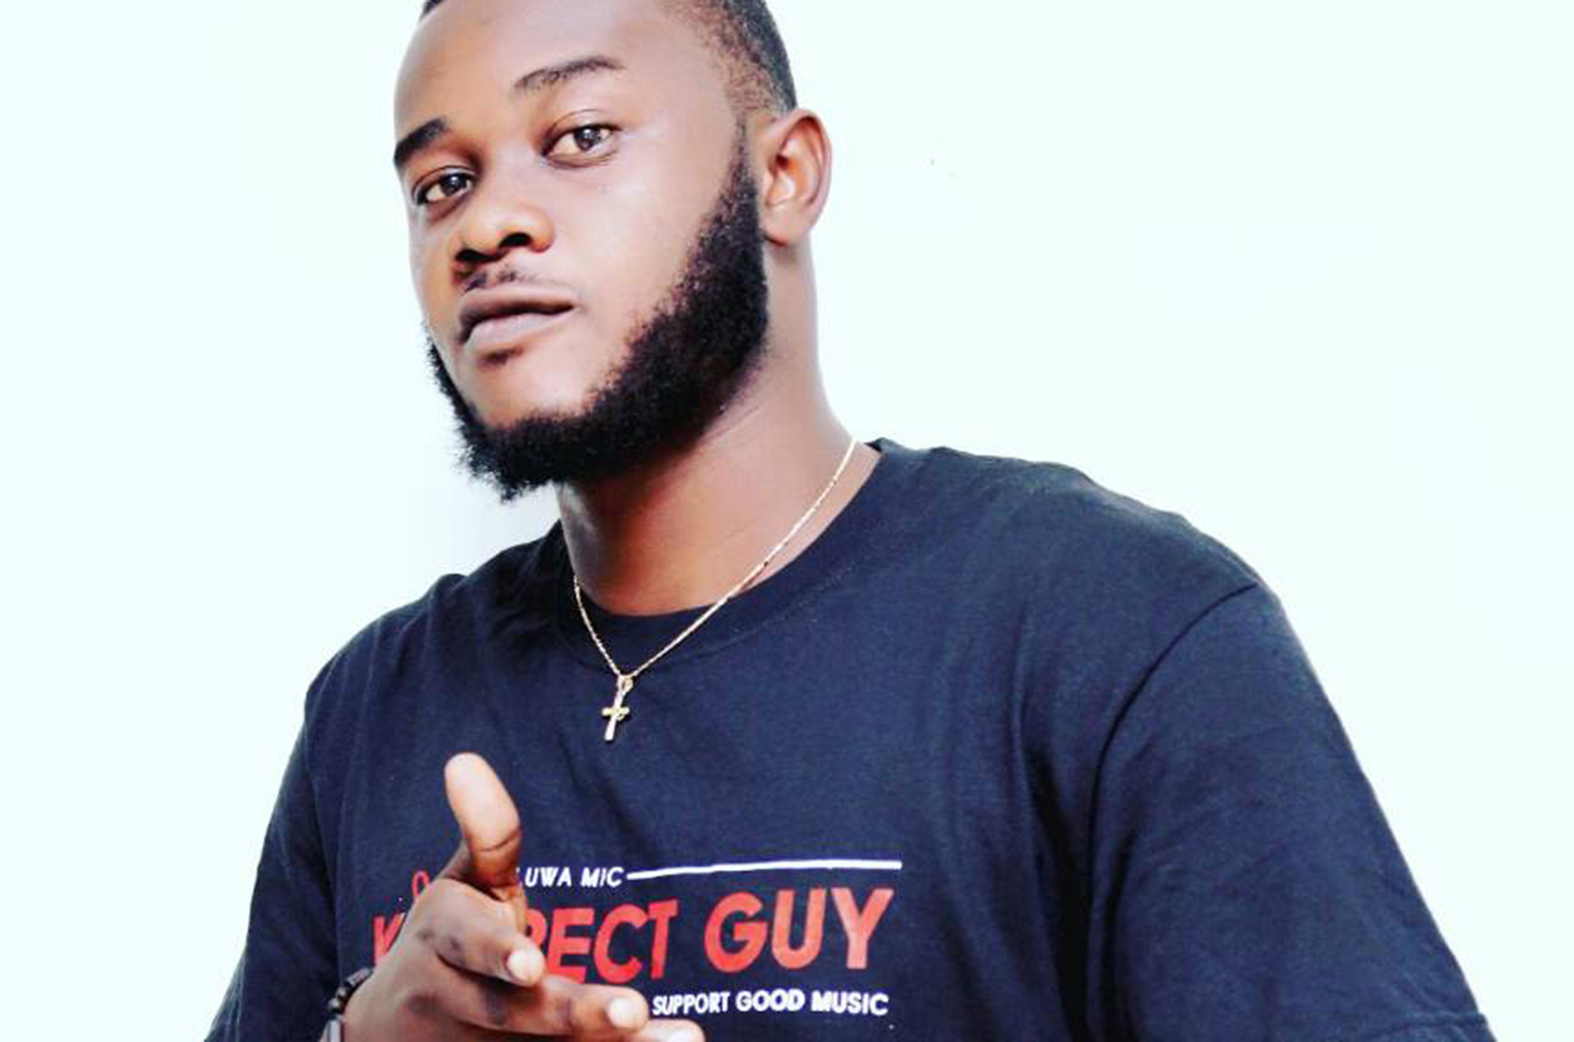 Oluwa Mic says a prayer for his fans